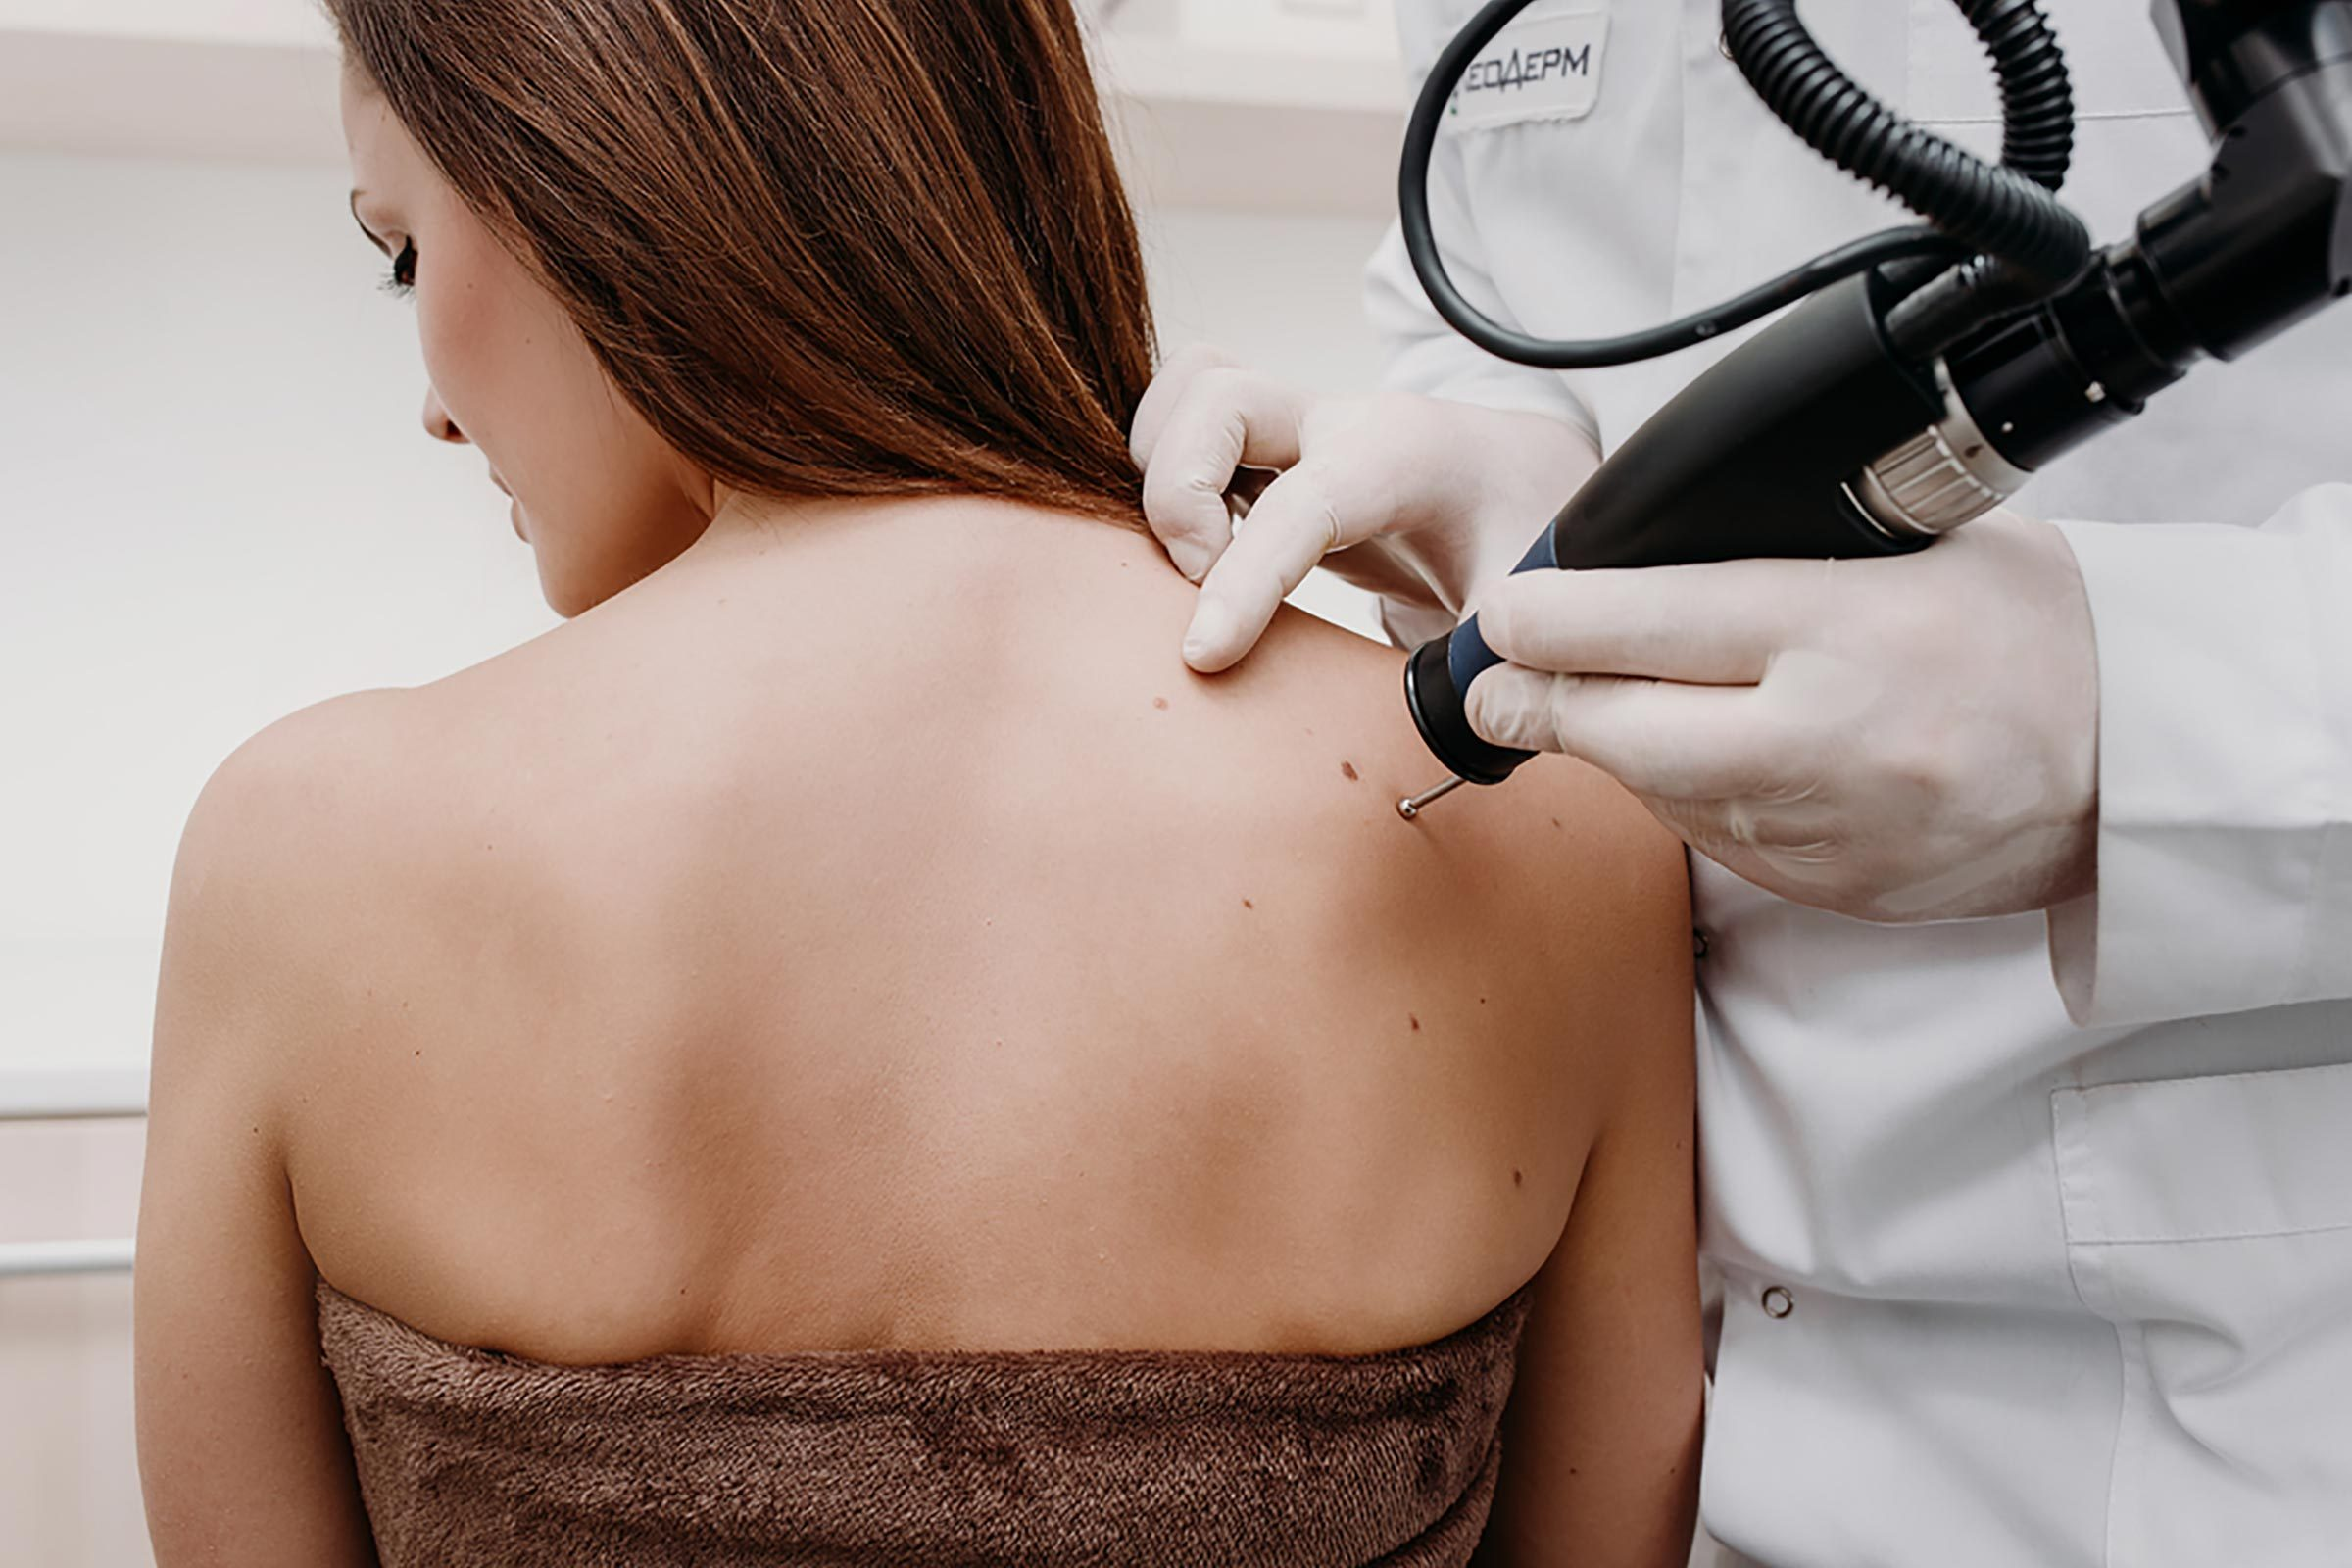 Removing skin tags